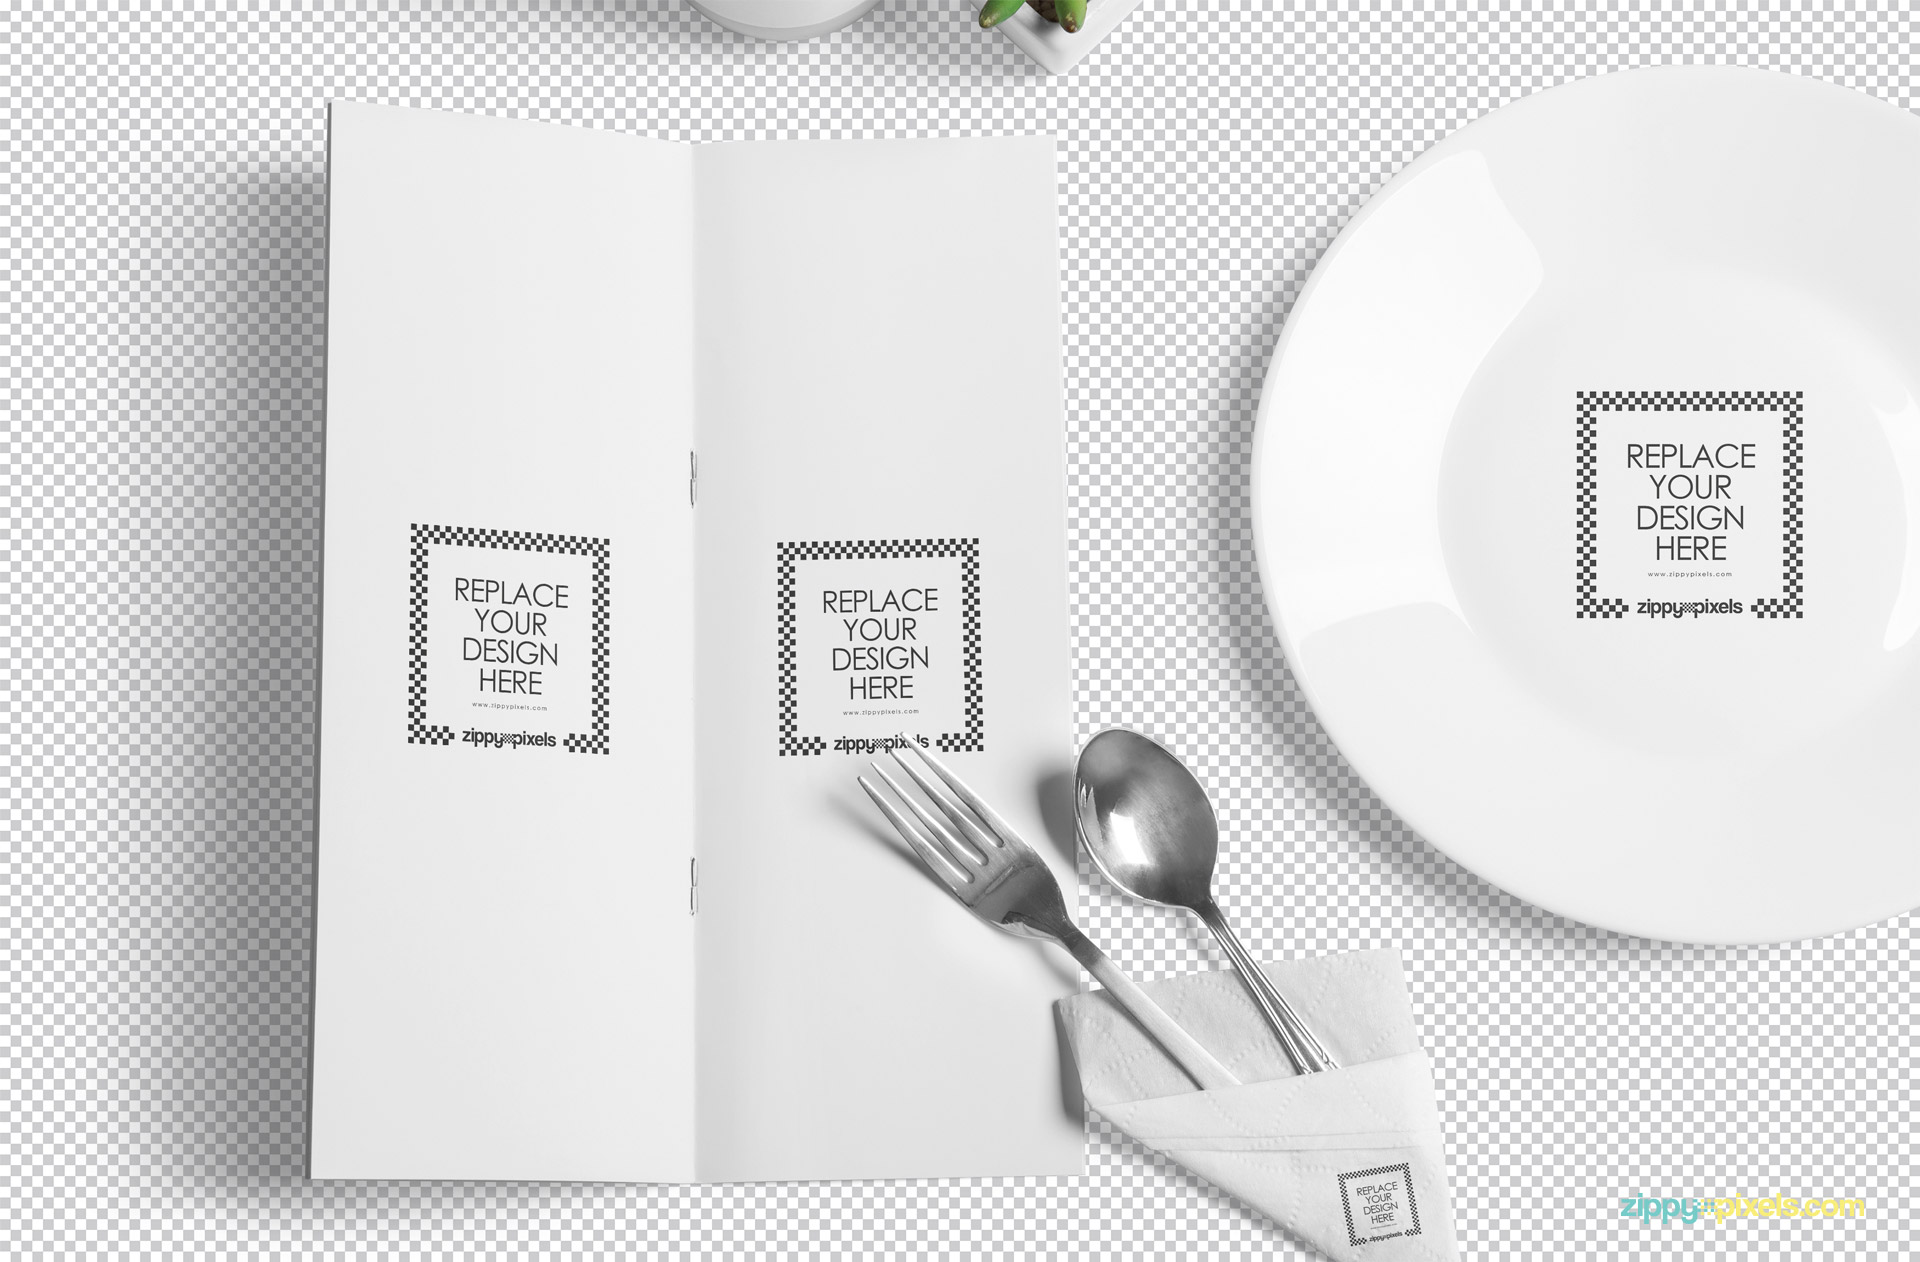 Use smart object option to replace the design of the menu mockup scene.